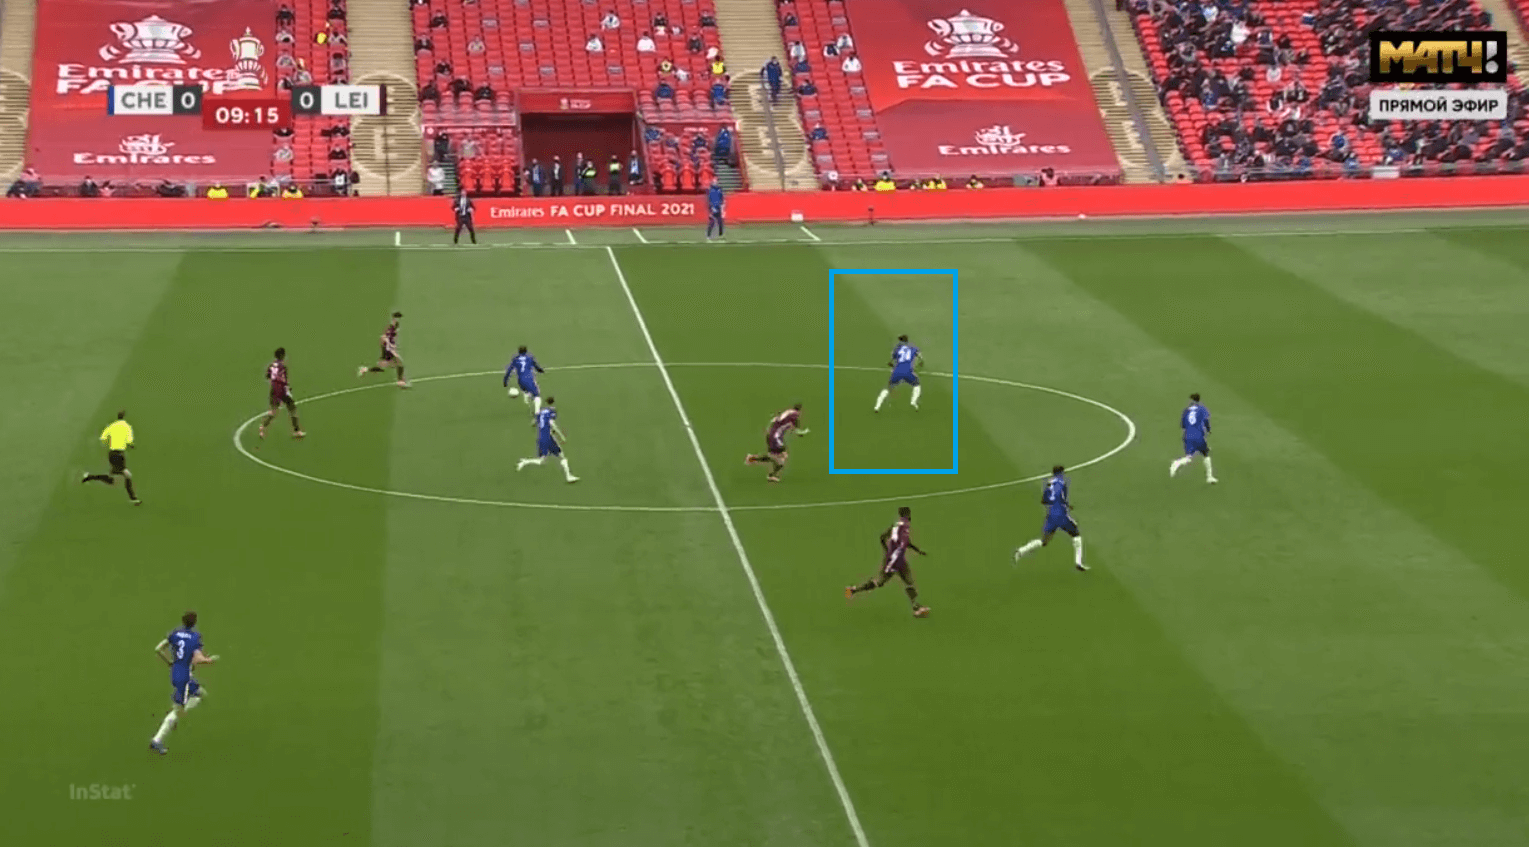 Tremendous Tielemans: How the Belgian's strike trumped Tuchel's adjustments to win Leicester their first FA Cup - tactical analysis tactics